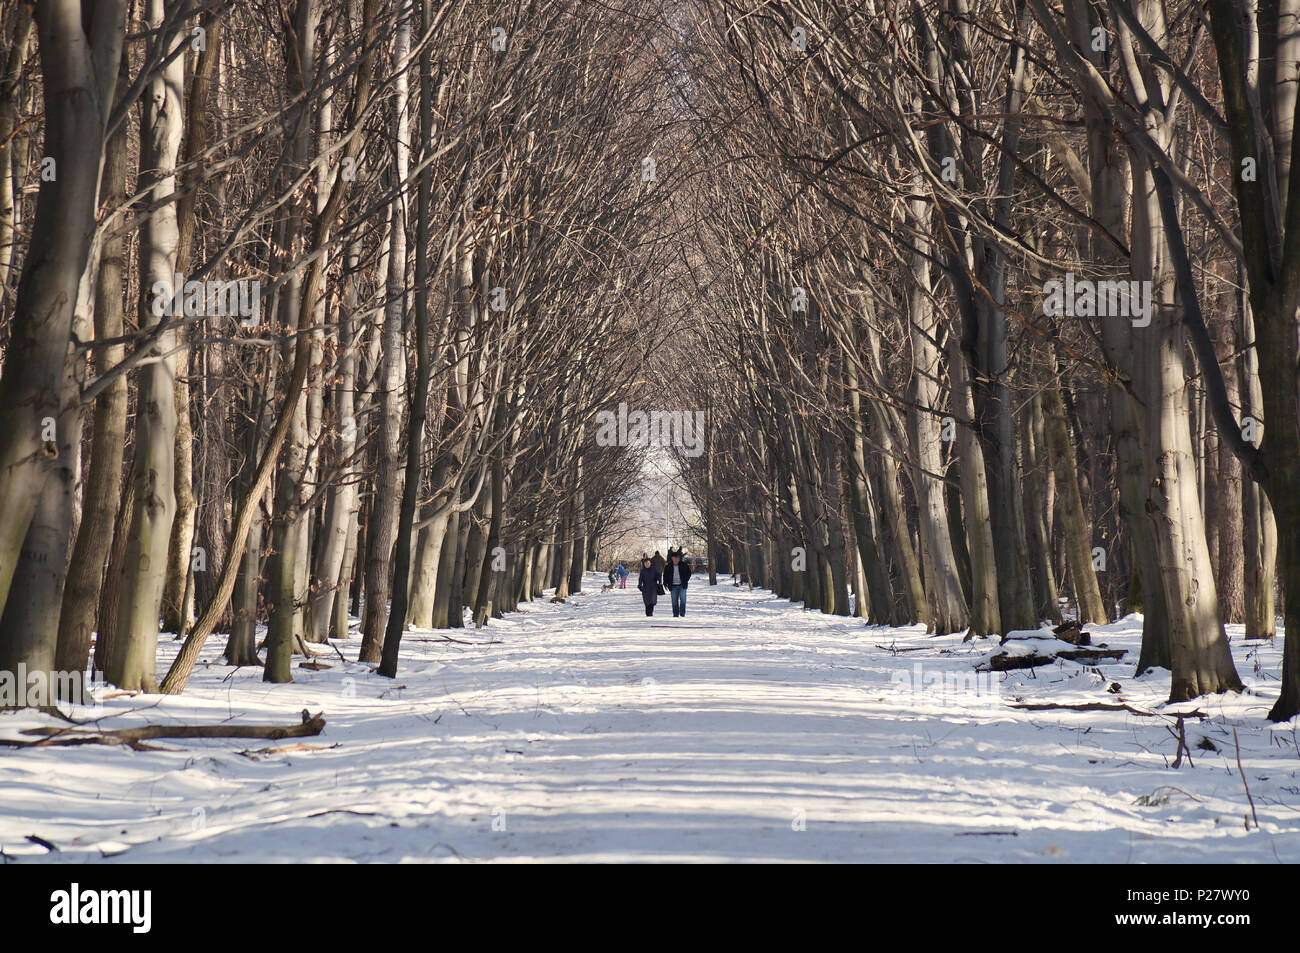 Snowy way. City-dwellers in Dendrarium park, Vladikavkaz, North Ossetia-Alania, Russia. 2014-01-07 - Stock Image